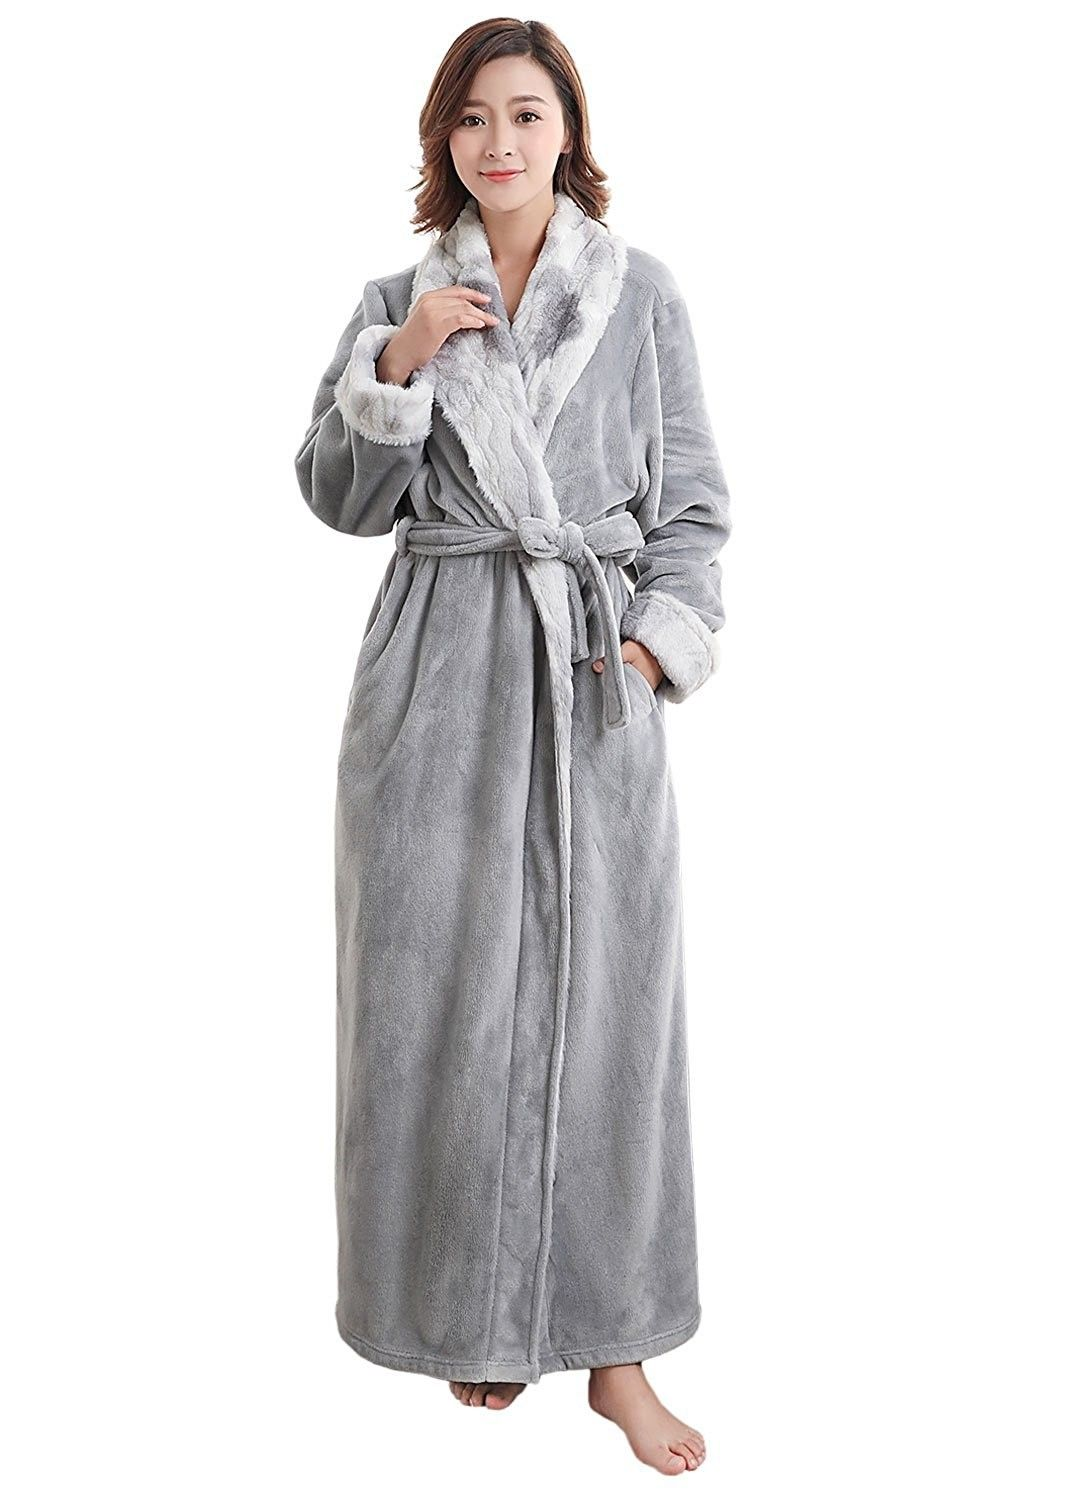 VI VI Women s Luxurious Fleece Bath Robe Plush Soft Warm Long Terry ... f79092703